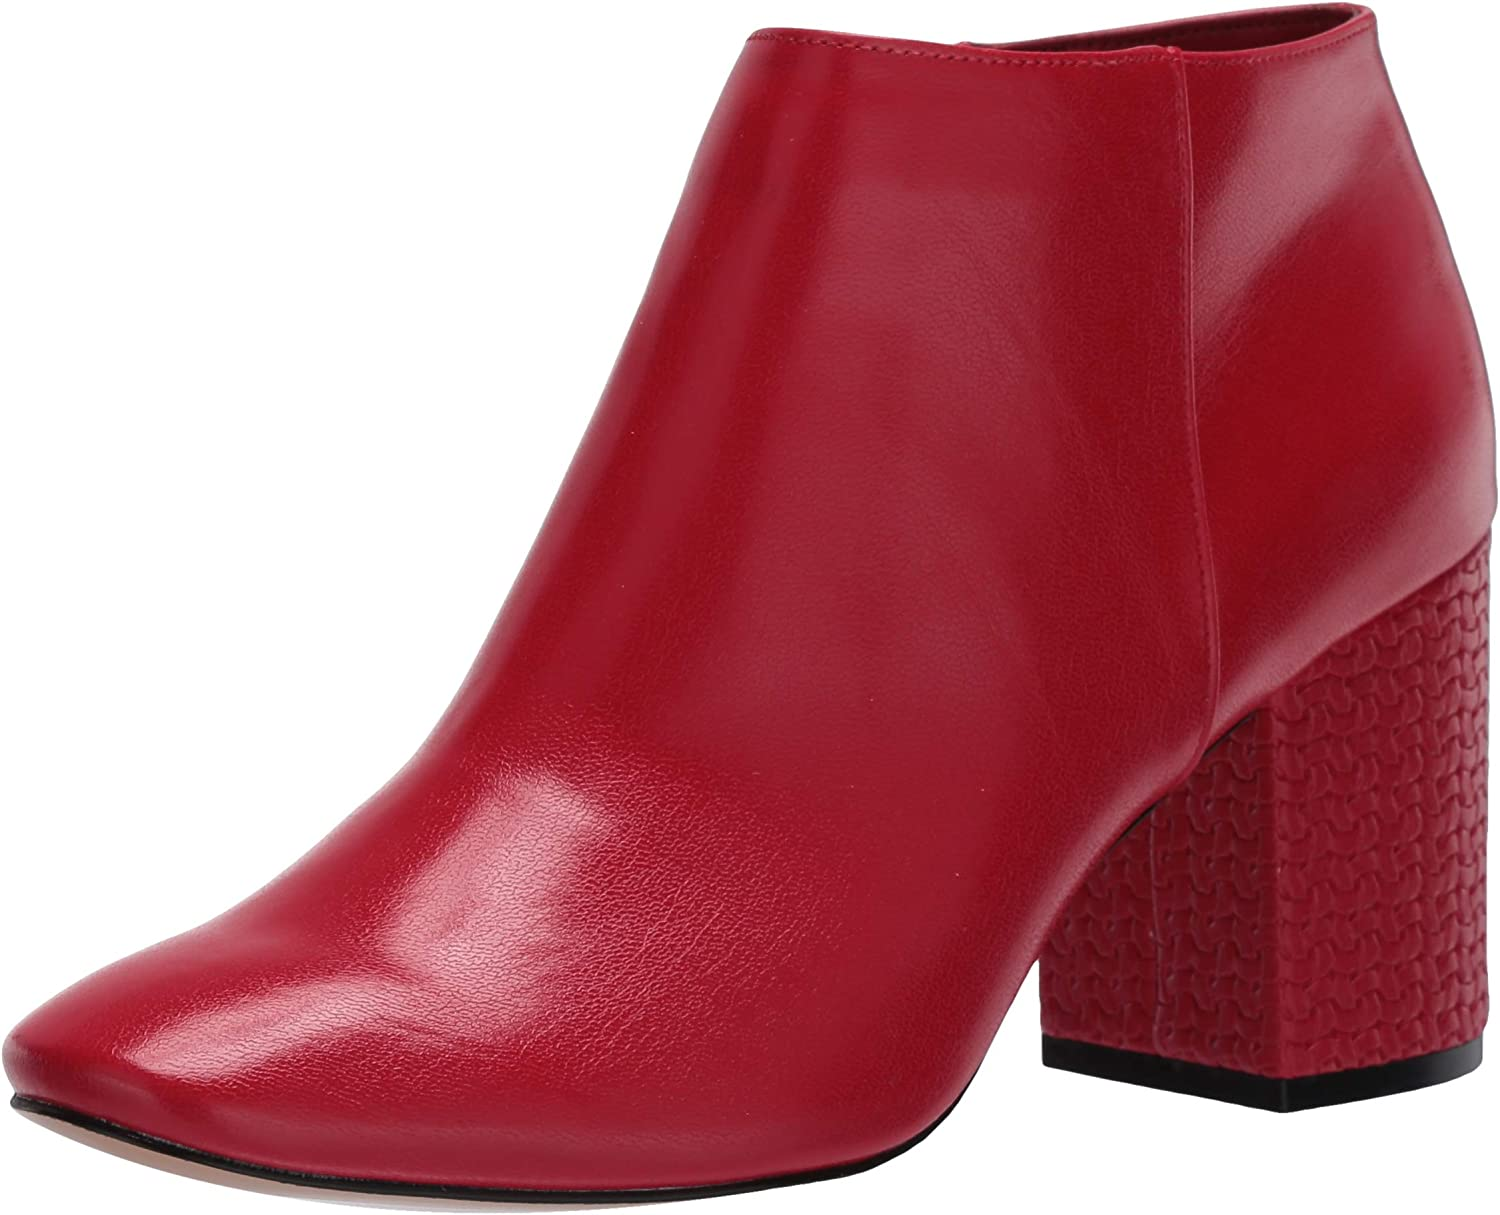 Max 52% OFF Katy Perry Women's Boot Ankle Bootie Boston Mall